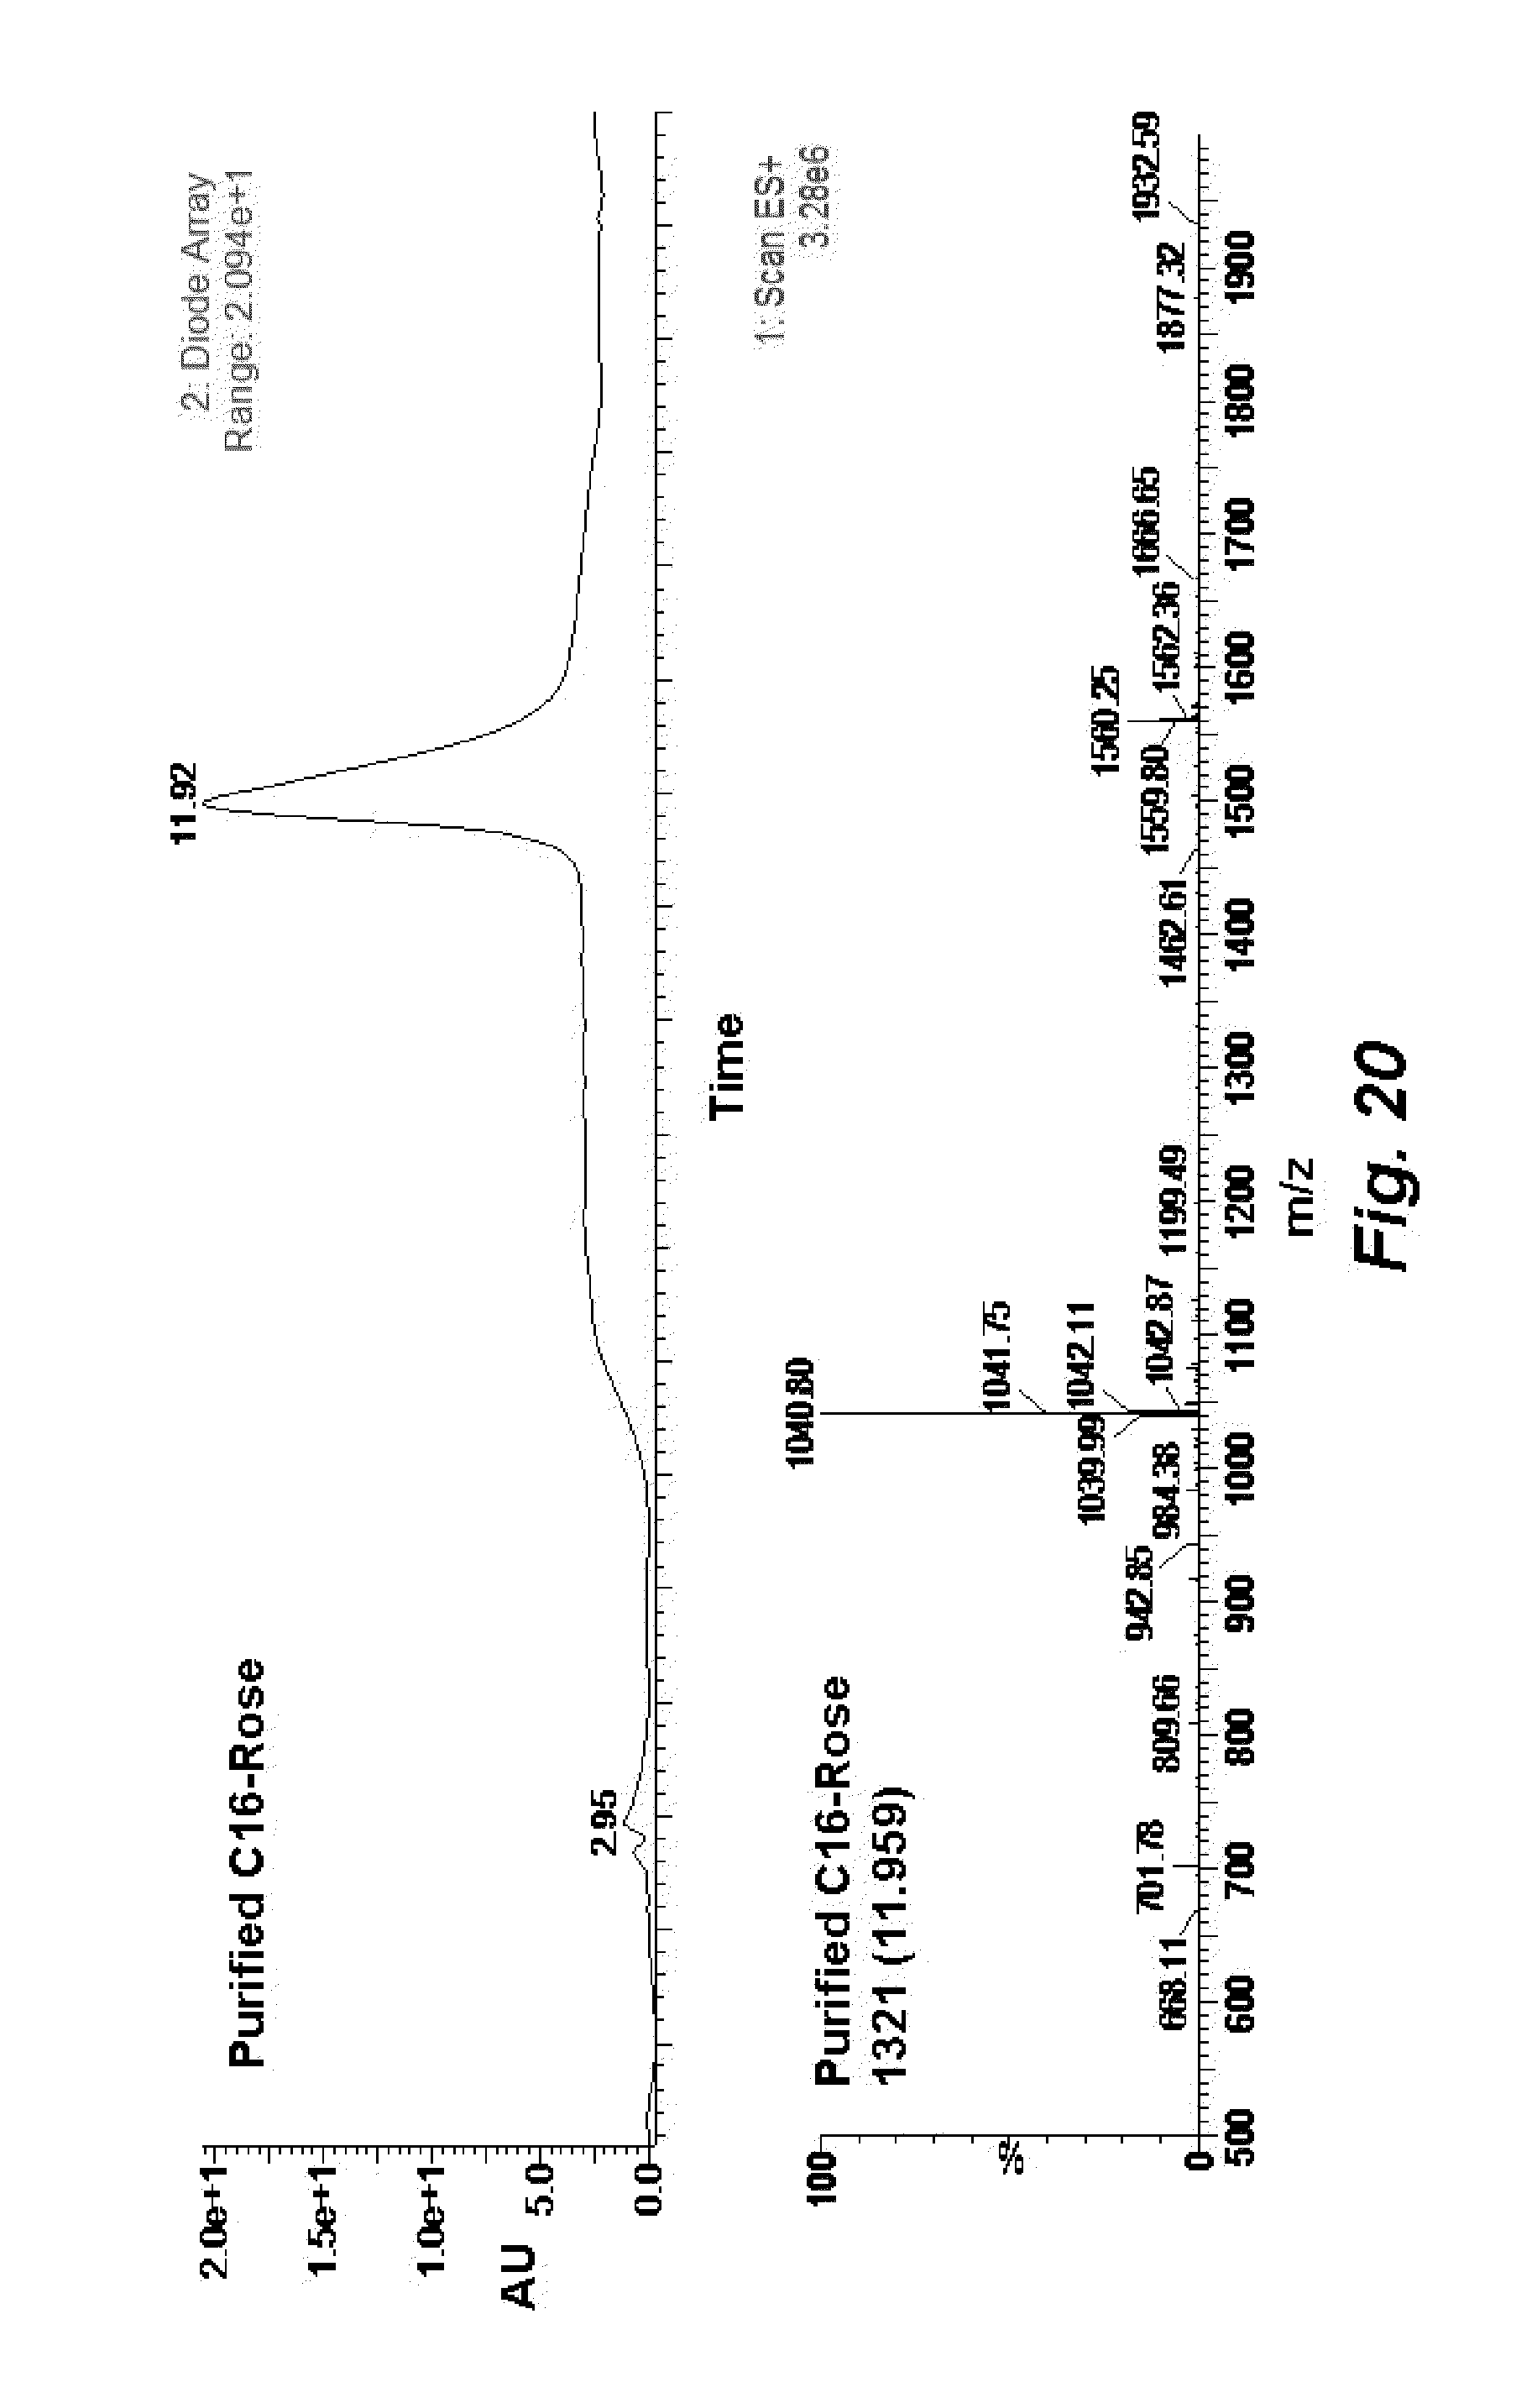 US20110039763A1 - Targeted antimicrobial moieties - Google